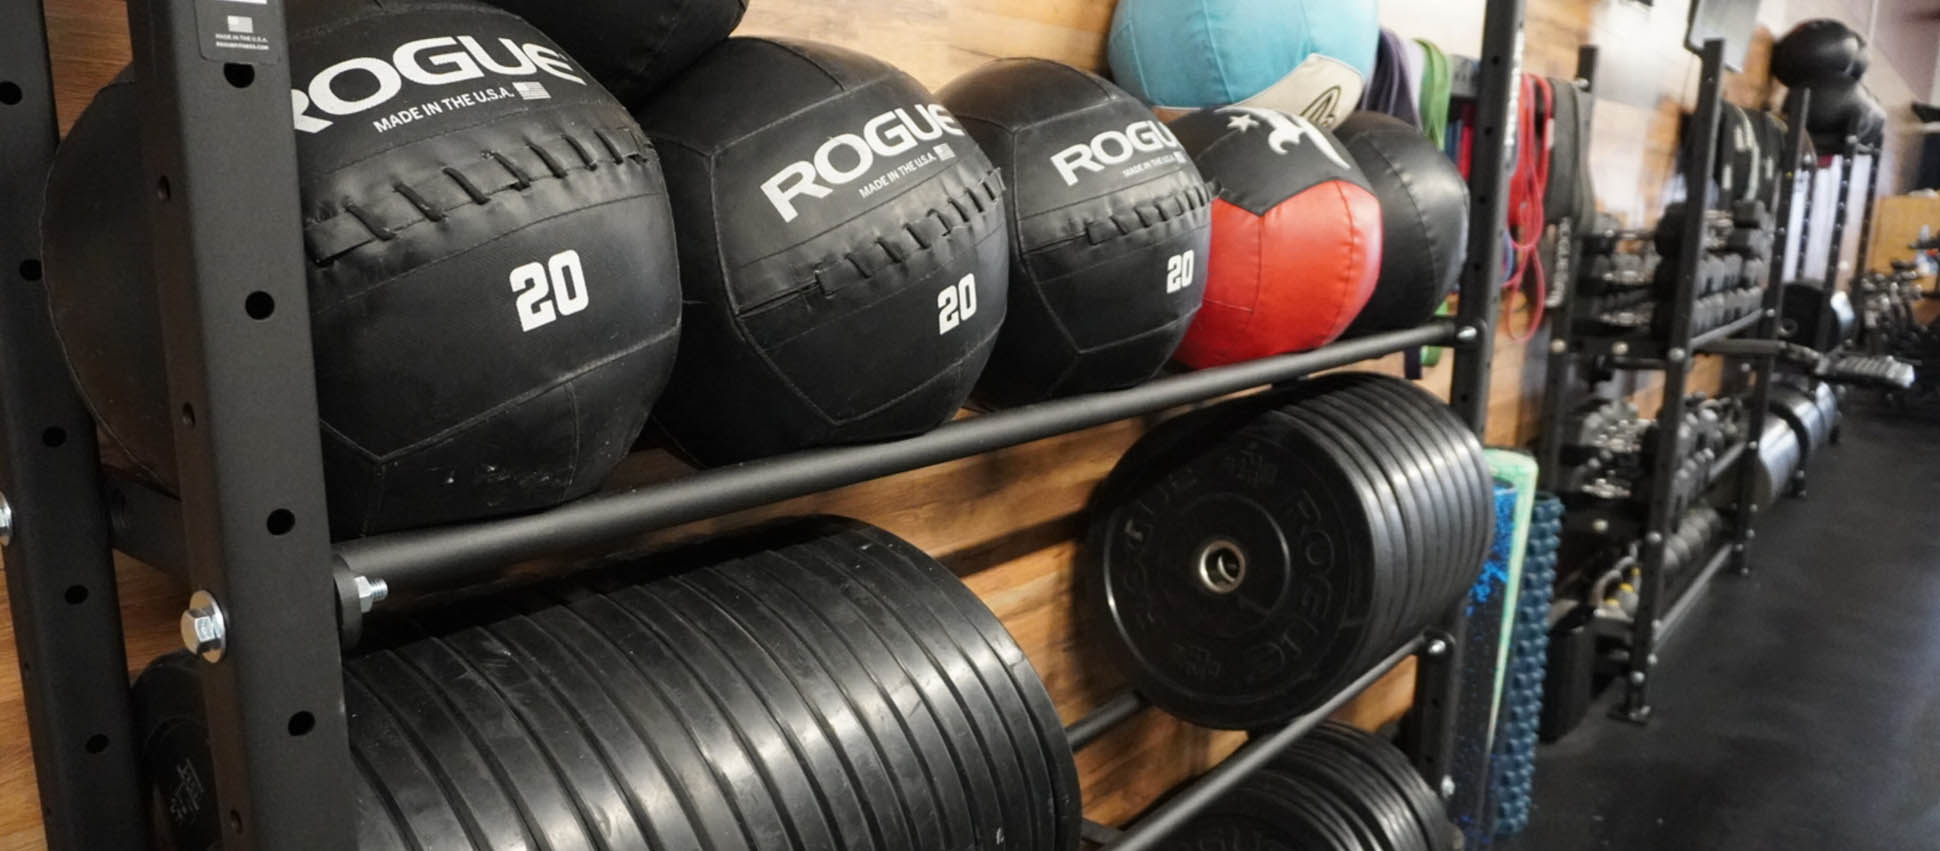 What Are The Best Gyms Near Me In Old Saybrook?